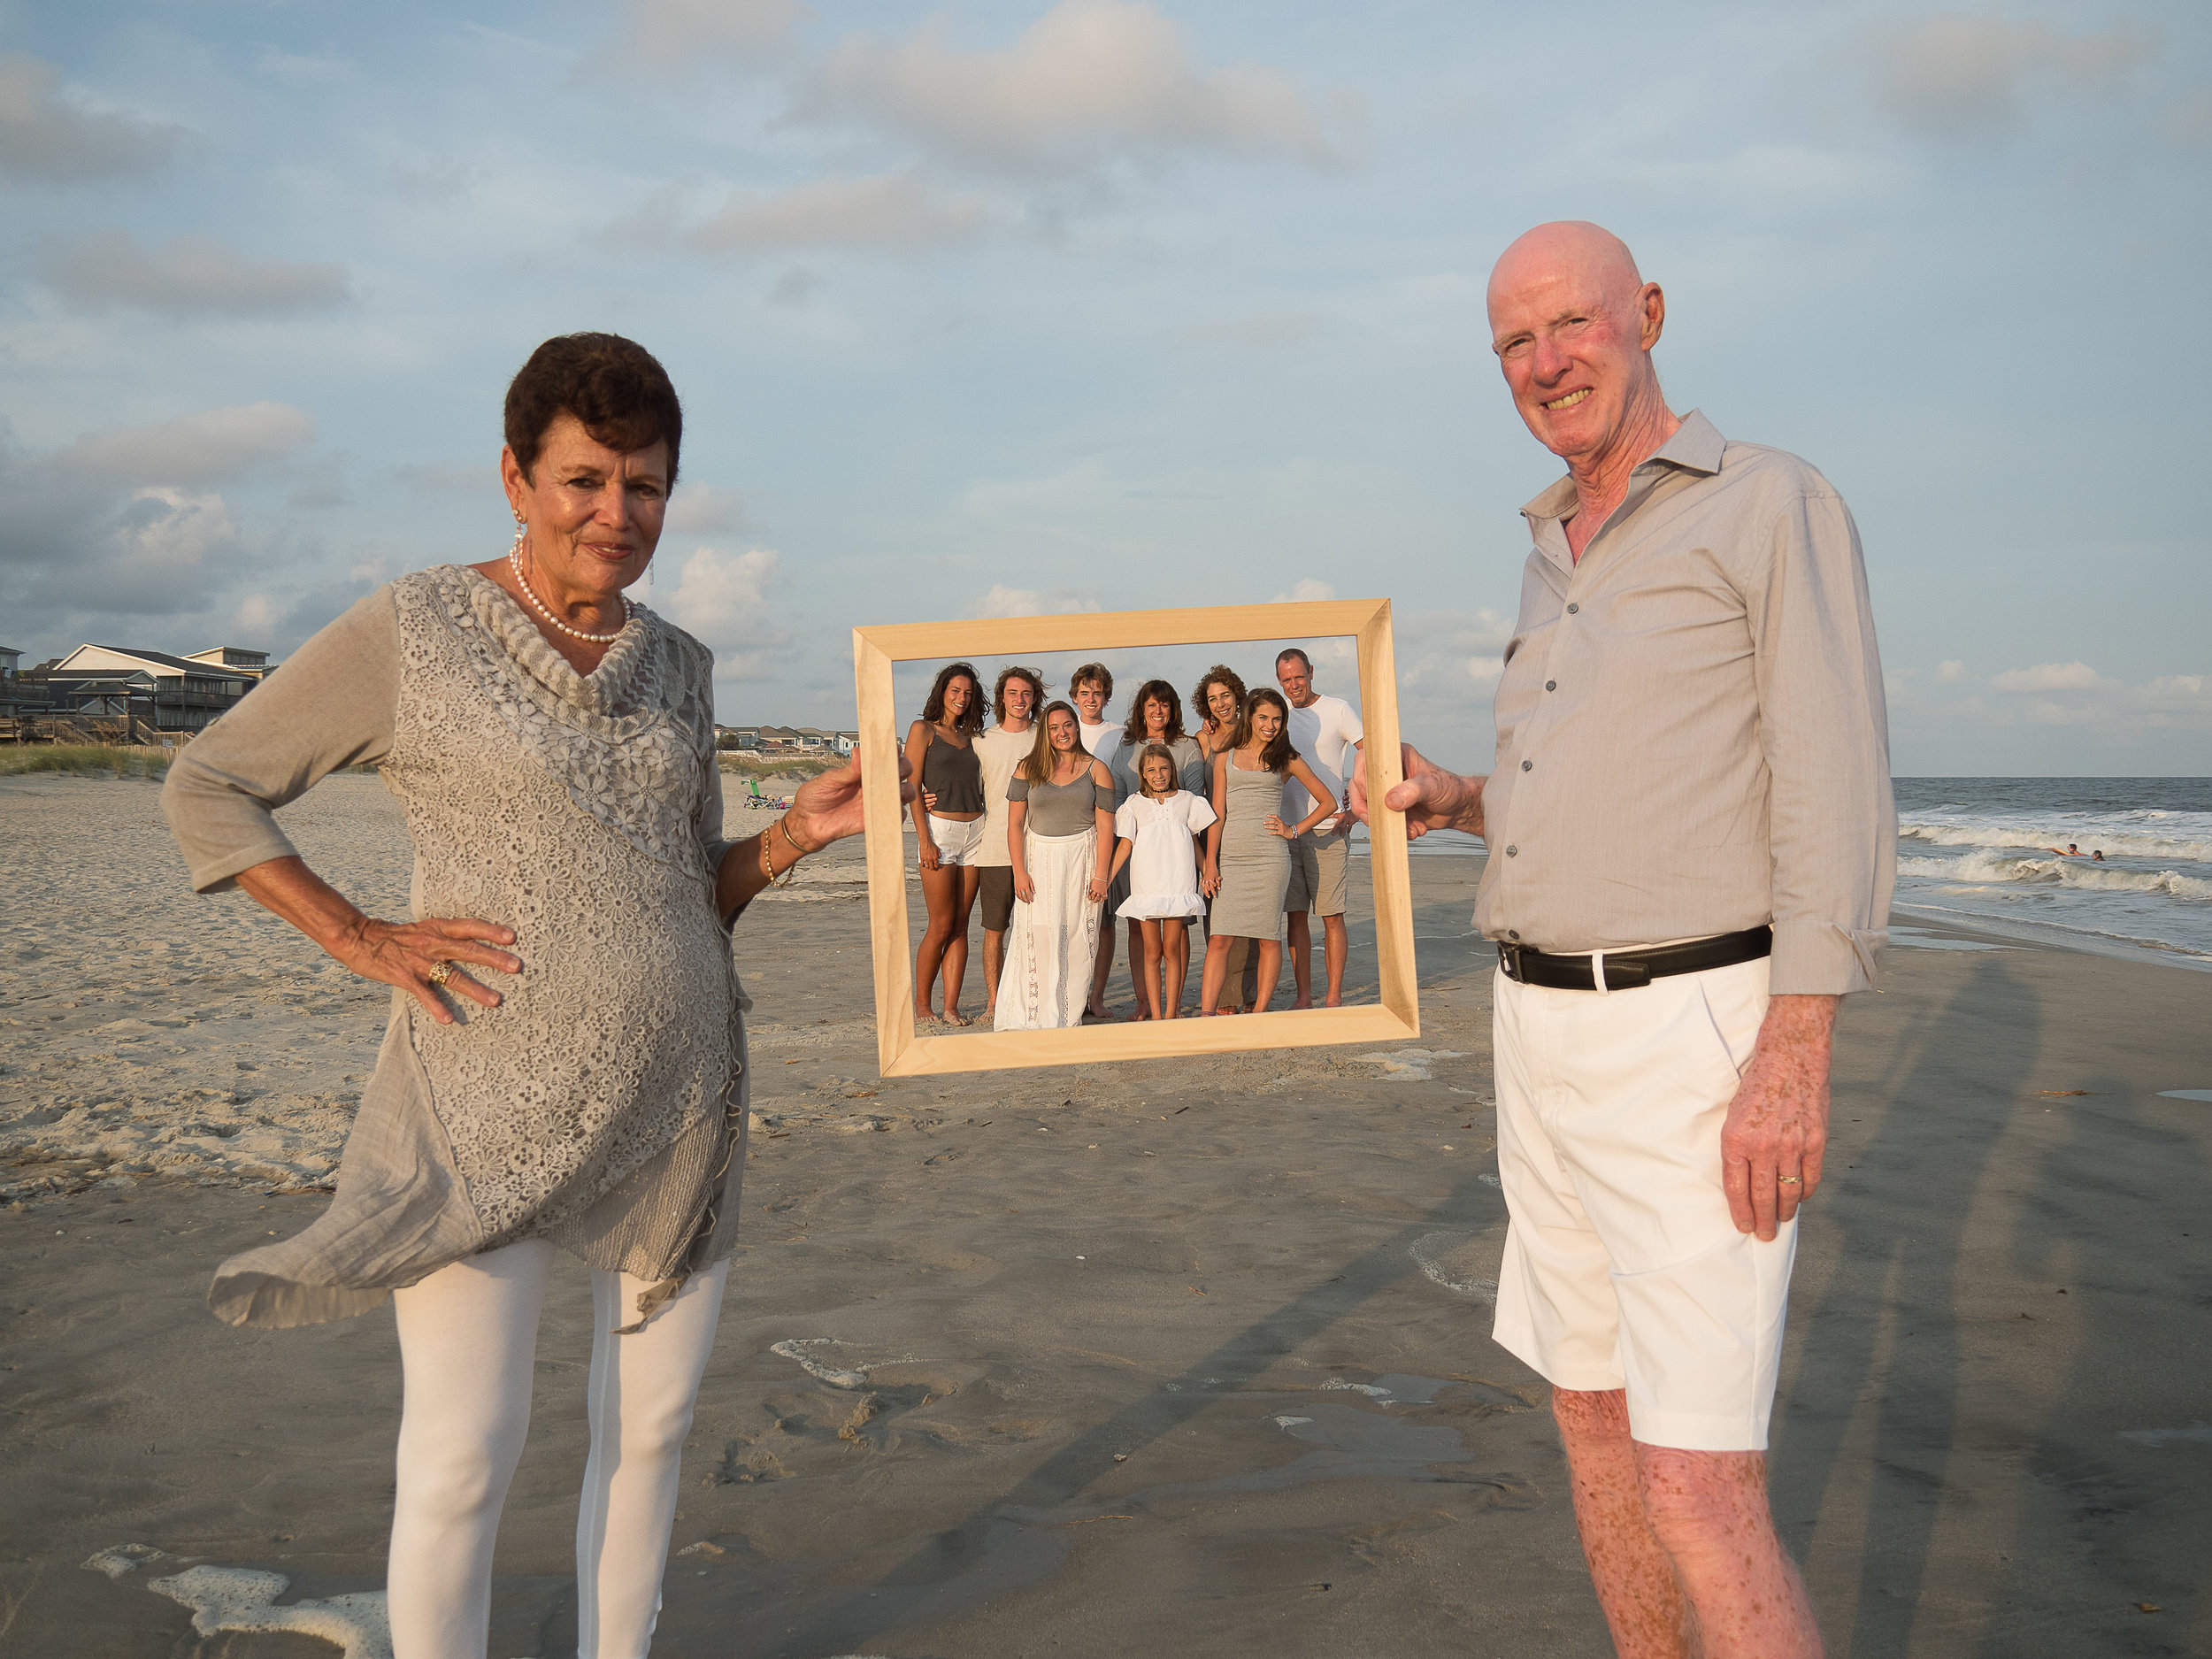 - Love props. Sometimes I bring em, sometimes the client does. Grandparents with frame of kids and grandkids...Ocean Isle Beach, NC